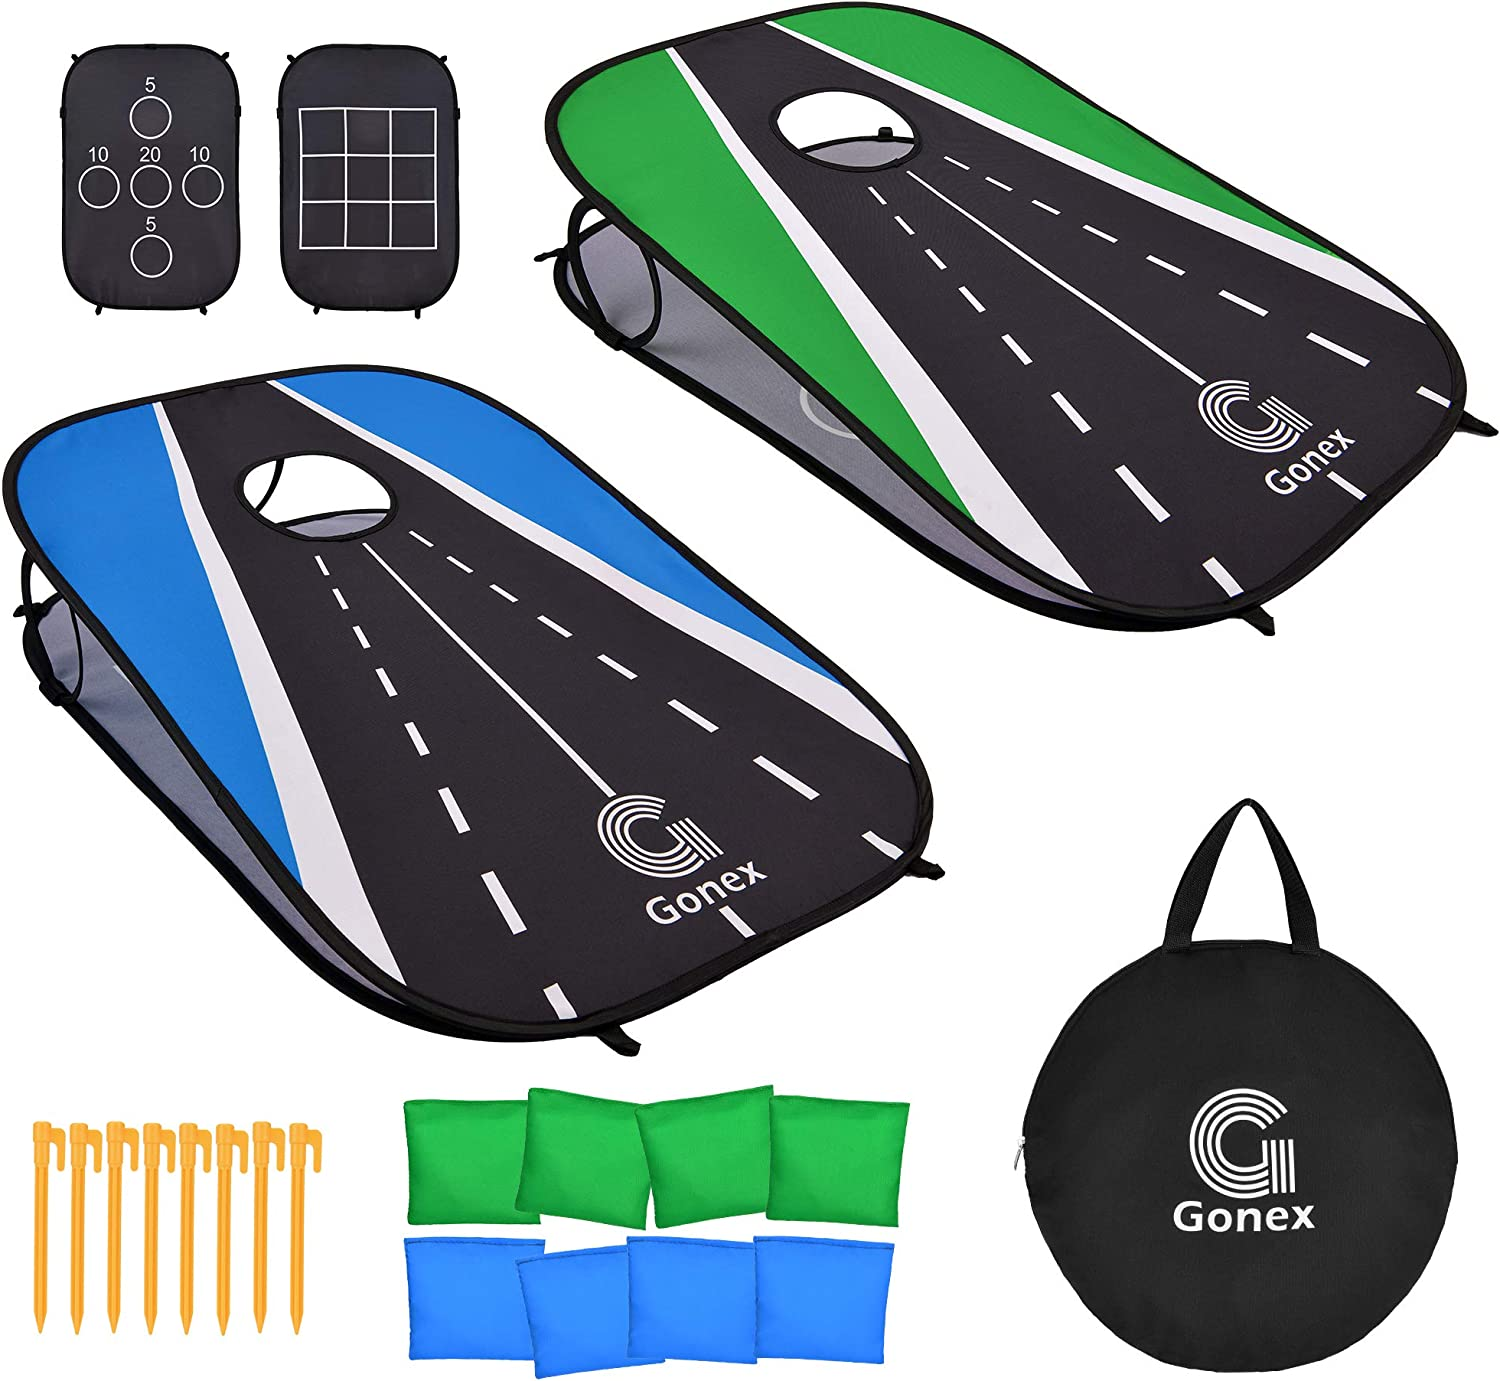 Gonex Collapsible Cornhole Set - Portable Max 57% OFF Hole Corn Boards with 35% OFF